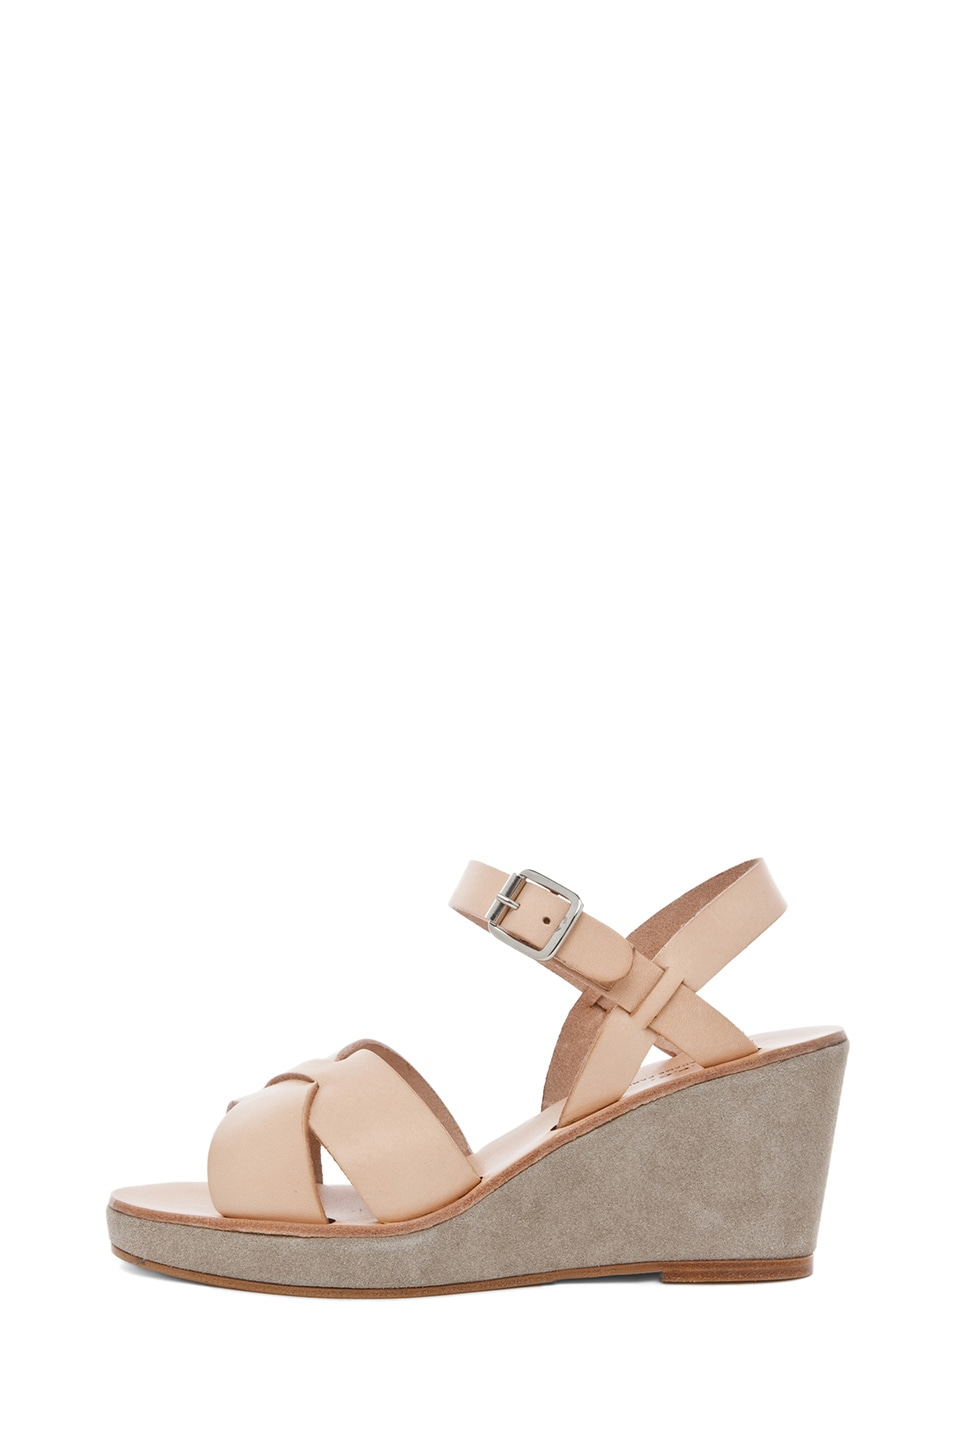 Image 1 of A.P.C. Criss Cros Wedge Sandal in Beige Naturel